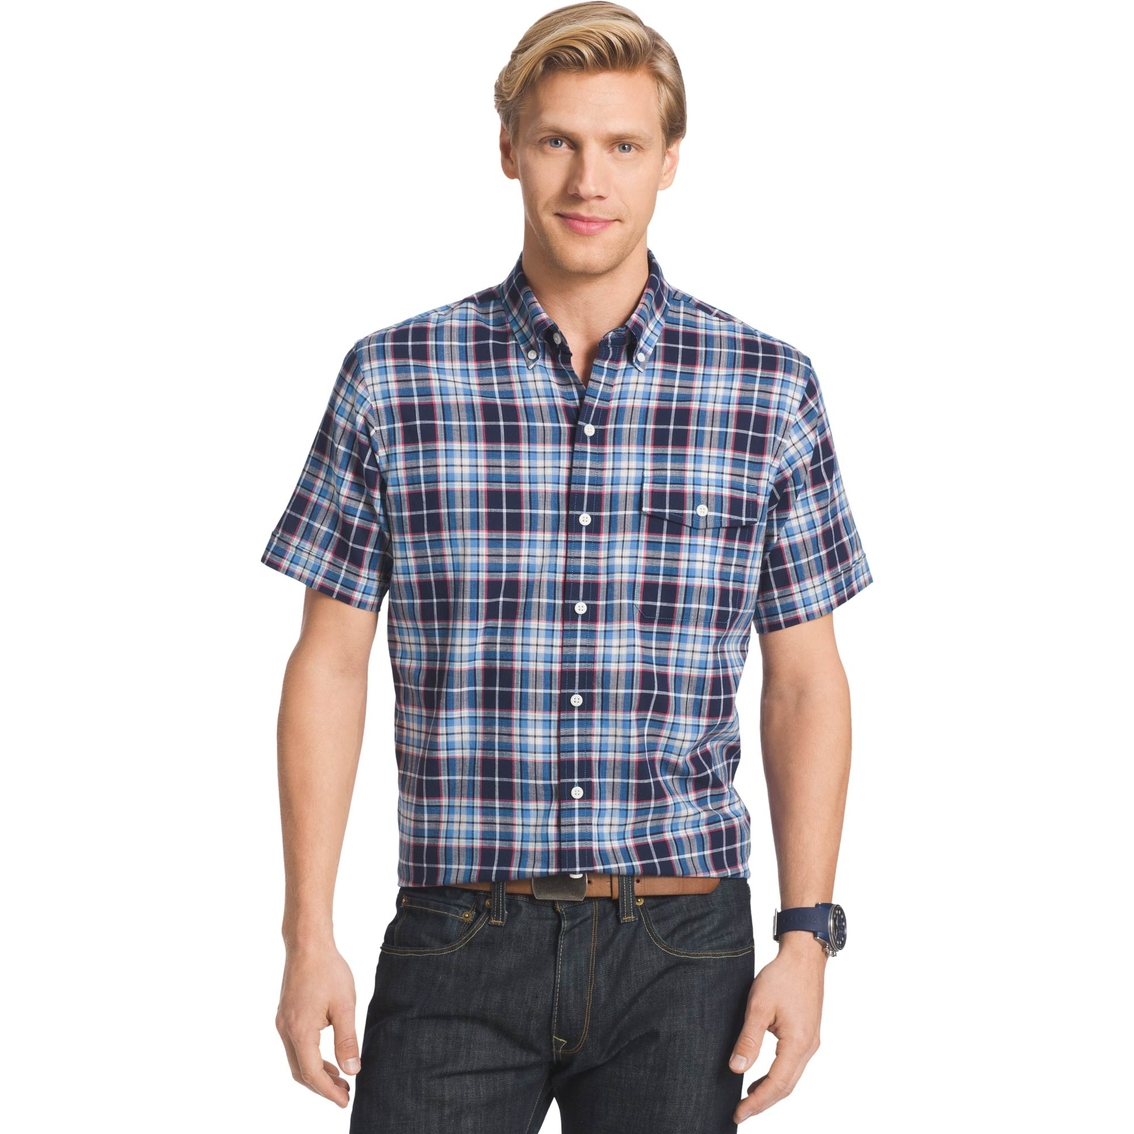 Izod sportswear dockside chambray plaid button down shirt for Izod button down shirts